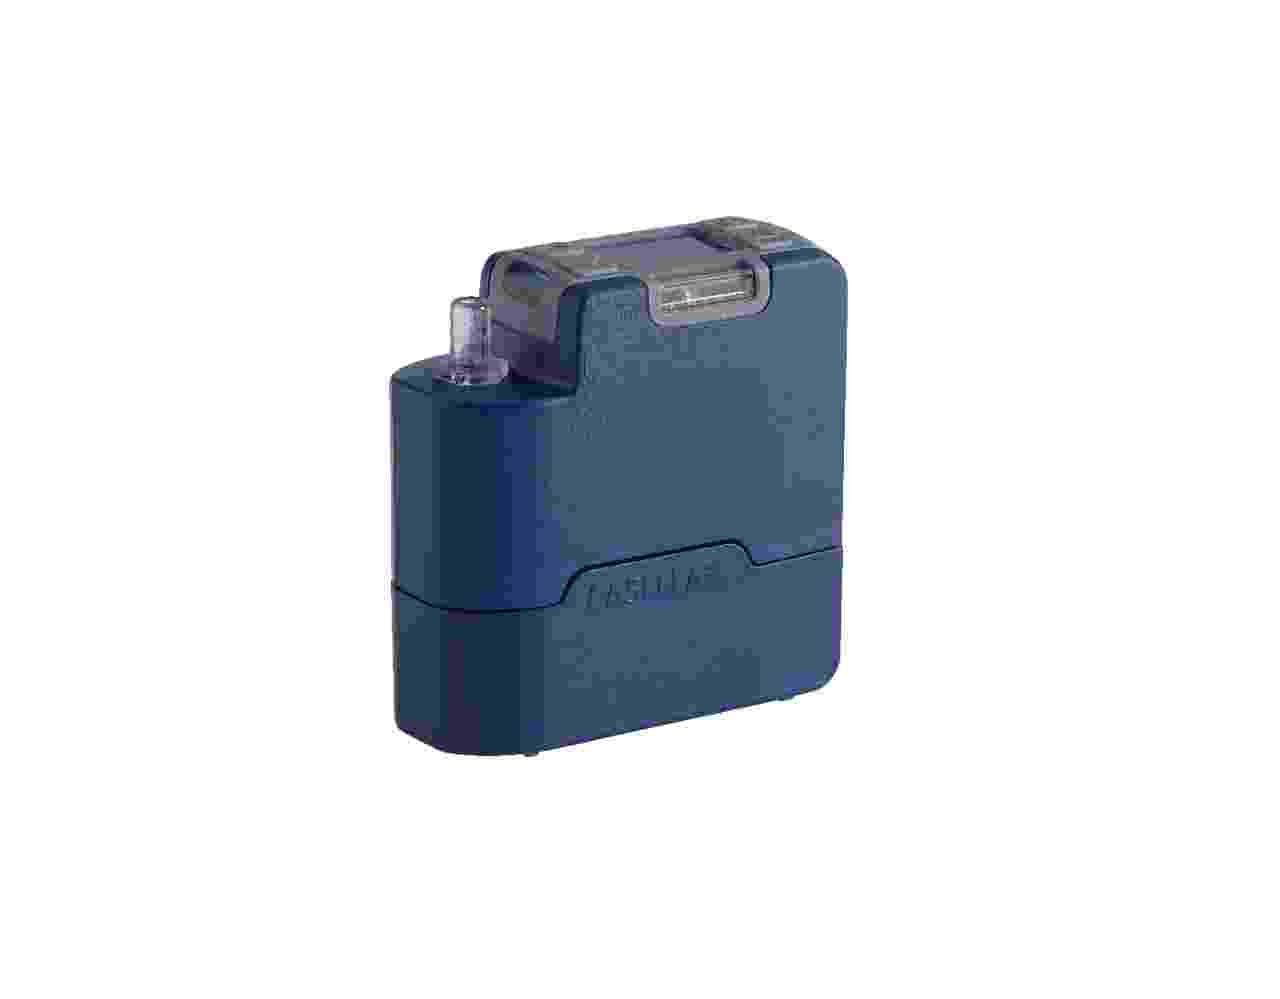 Casella's Personal Air Sampling Pump for low flow applications. It has been designed particularly for low flow sampling of vapors and gases in working environments.